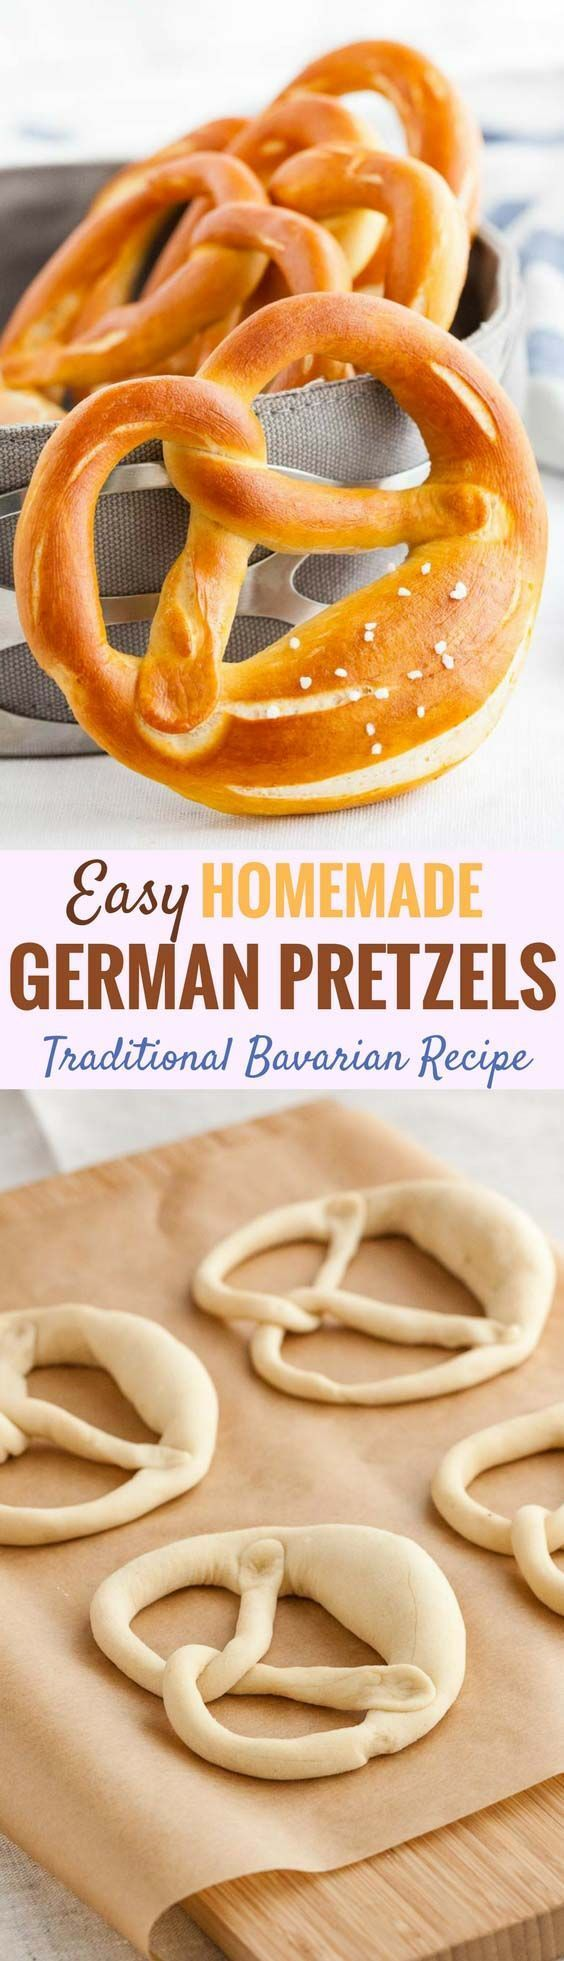 These Bavarian pretzels are a very popular snack in Germany and perfect for your next Oktoberfest party! They taste delicious dipped incheese sauce and are easy to make at home with simple ingredients. #germanpretzels #germanrecipes #softpretzels #pretzels #oktoberfestrecipes